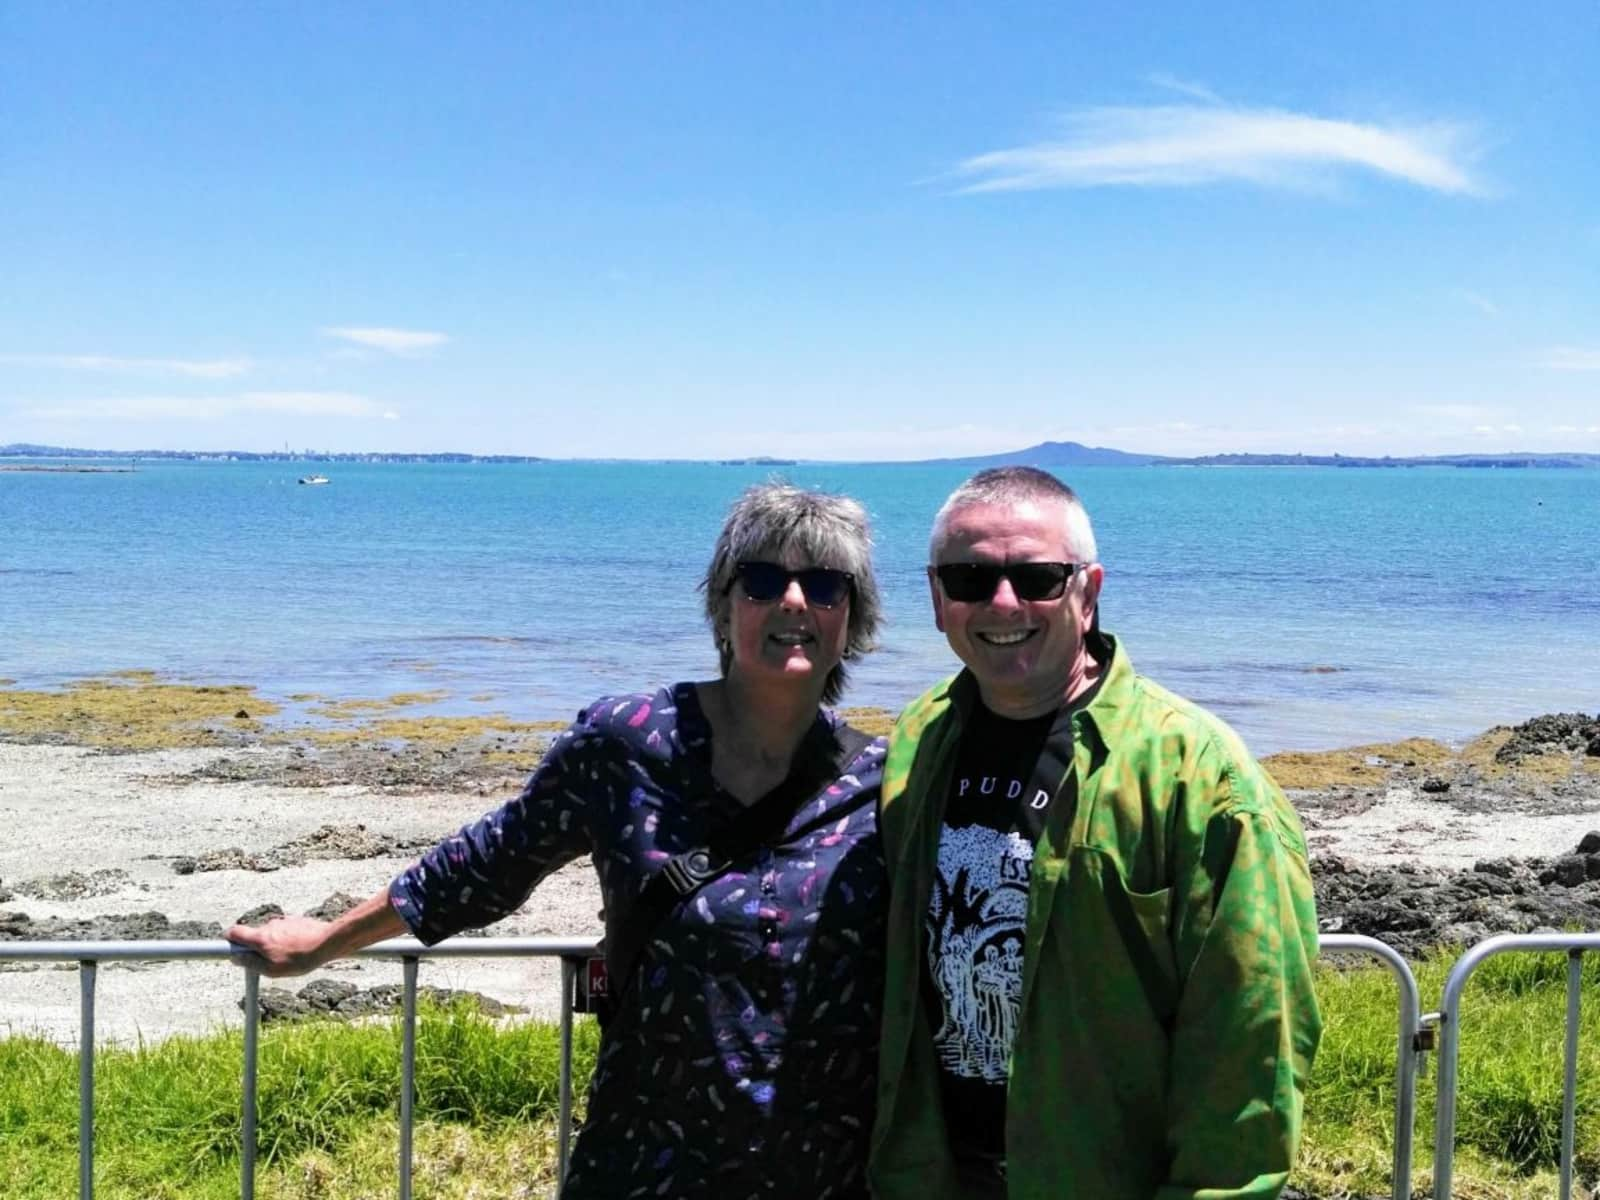 Diana & Frank from Christchurch, New Zealand